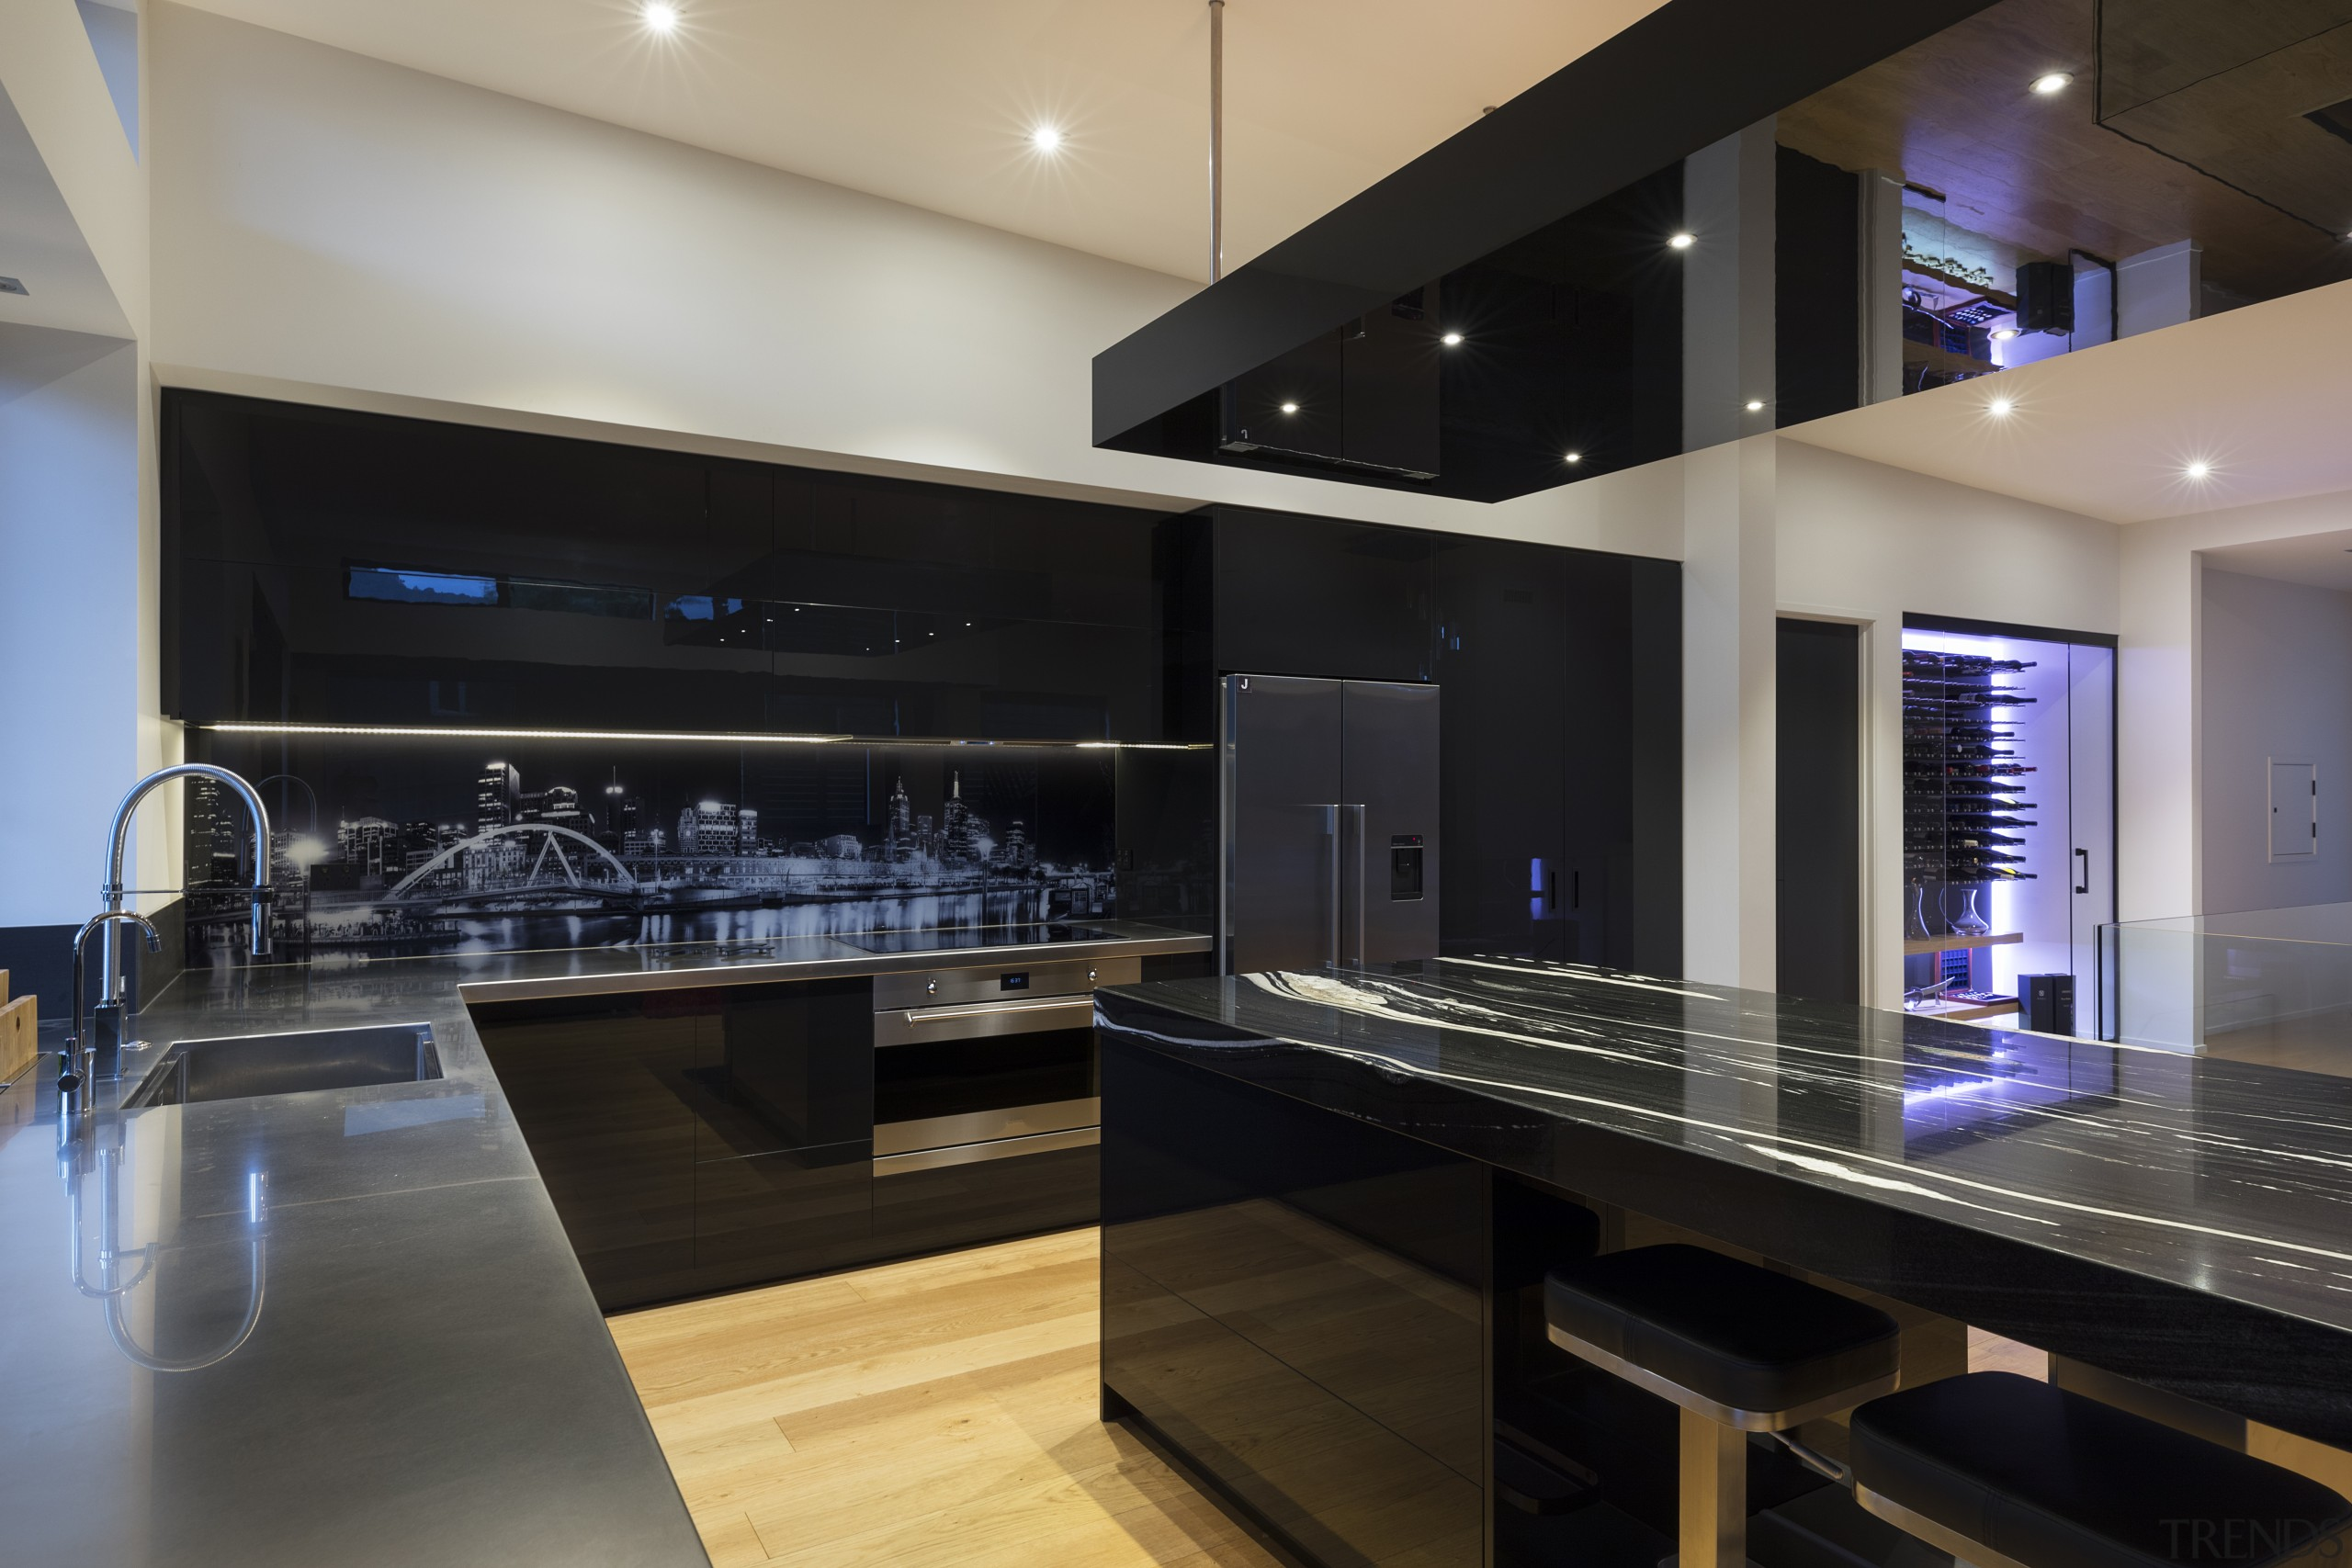 All drawers and lift systems utilise Blum Servo cabinetry, ceiling, countertop, flooring, interior design, kitchen, real estate, under cabinet lighting, black, gray